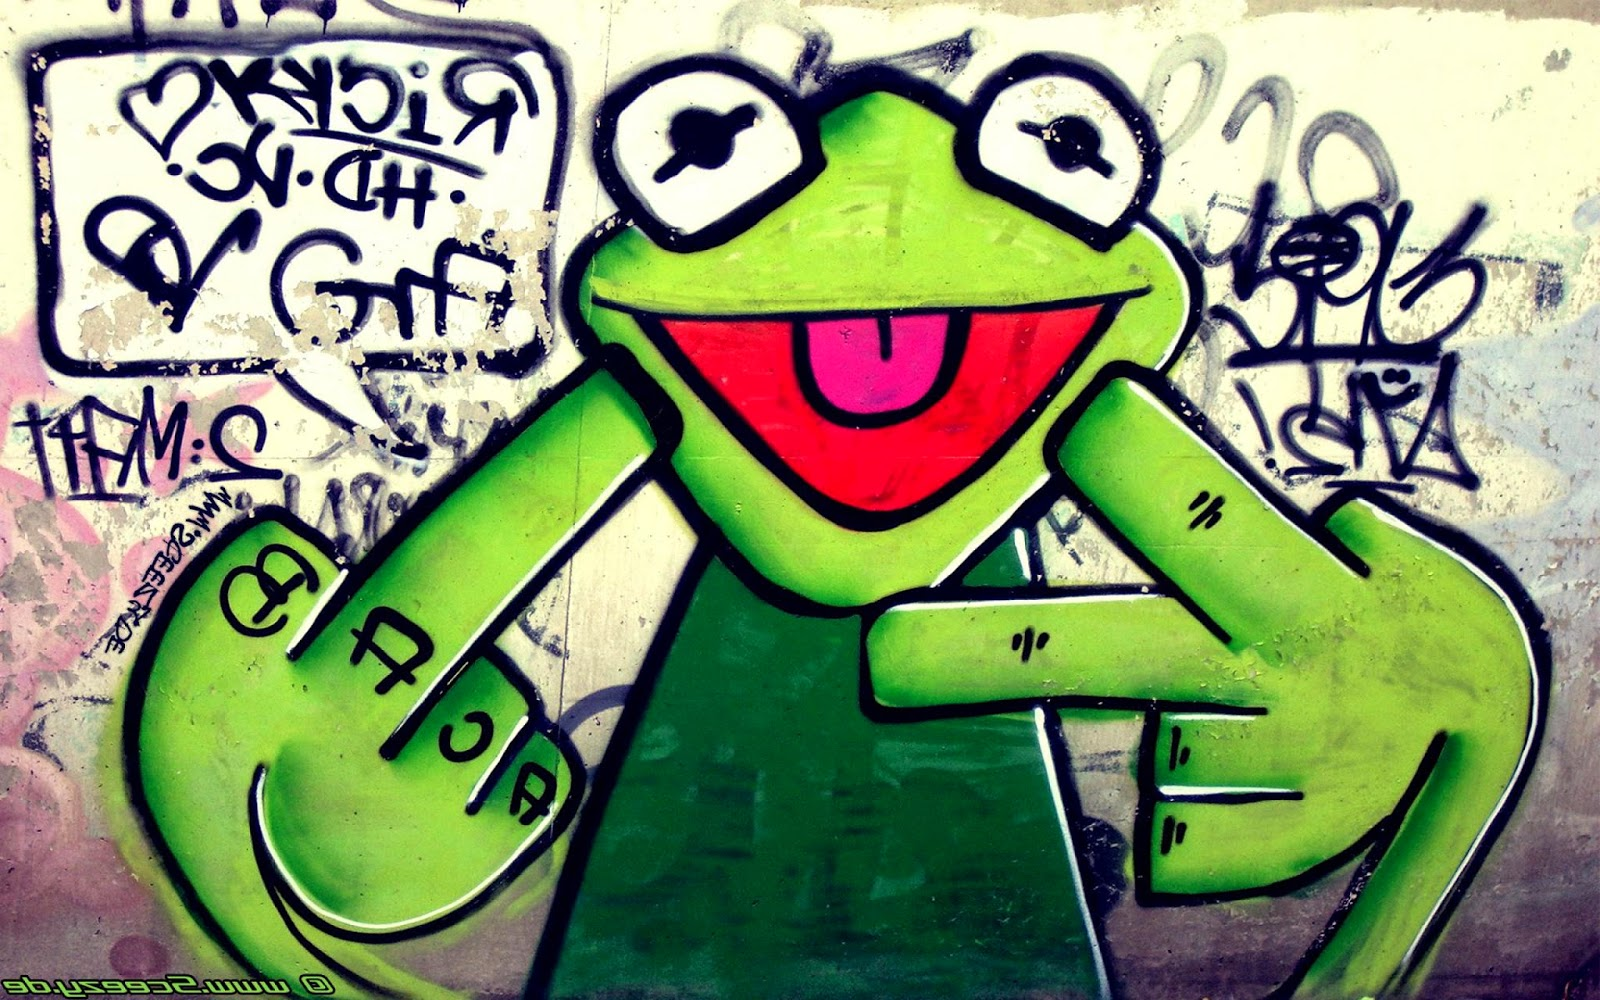 Collection of Cool Wallpapers Graffiti on HDWallpapers